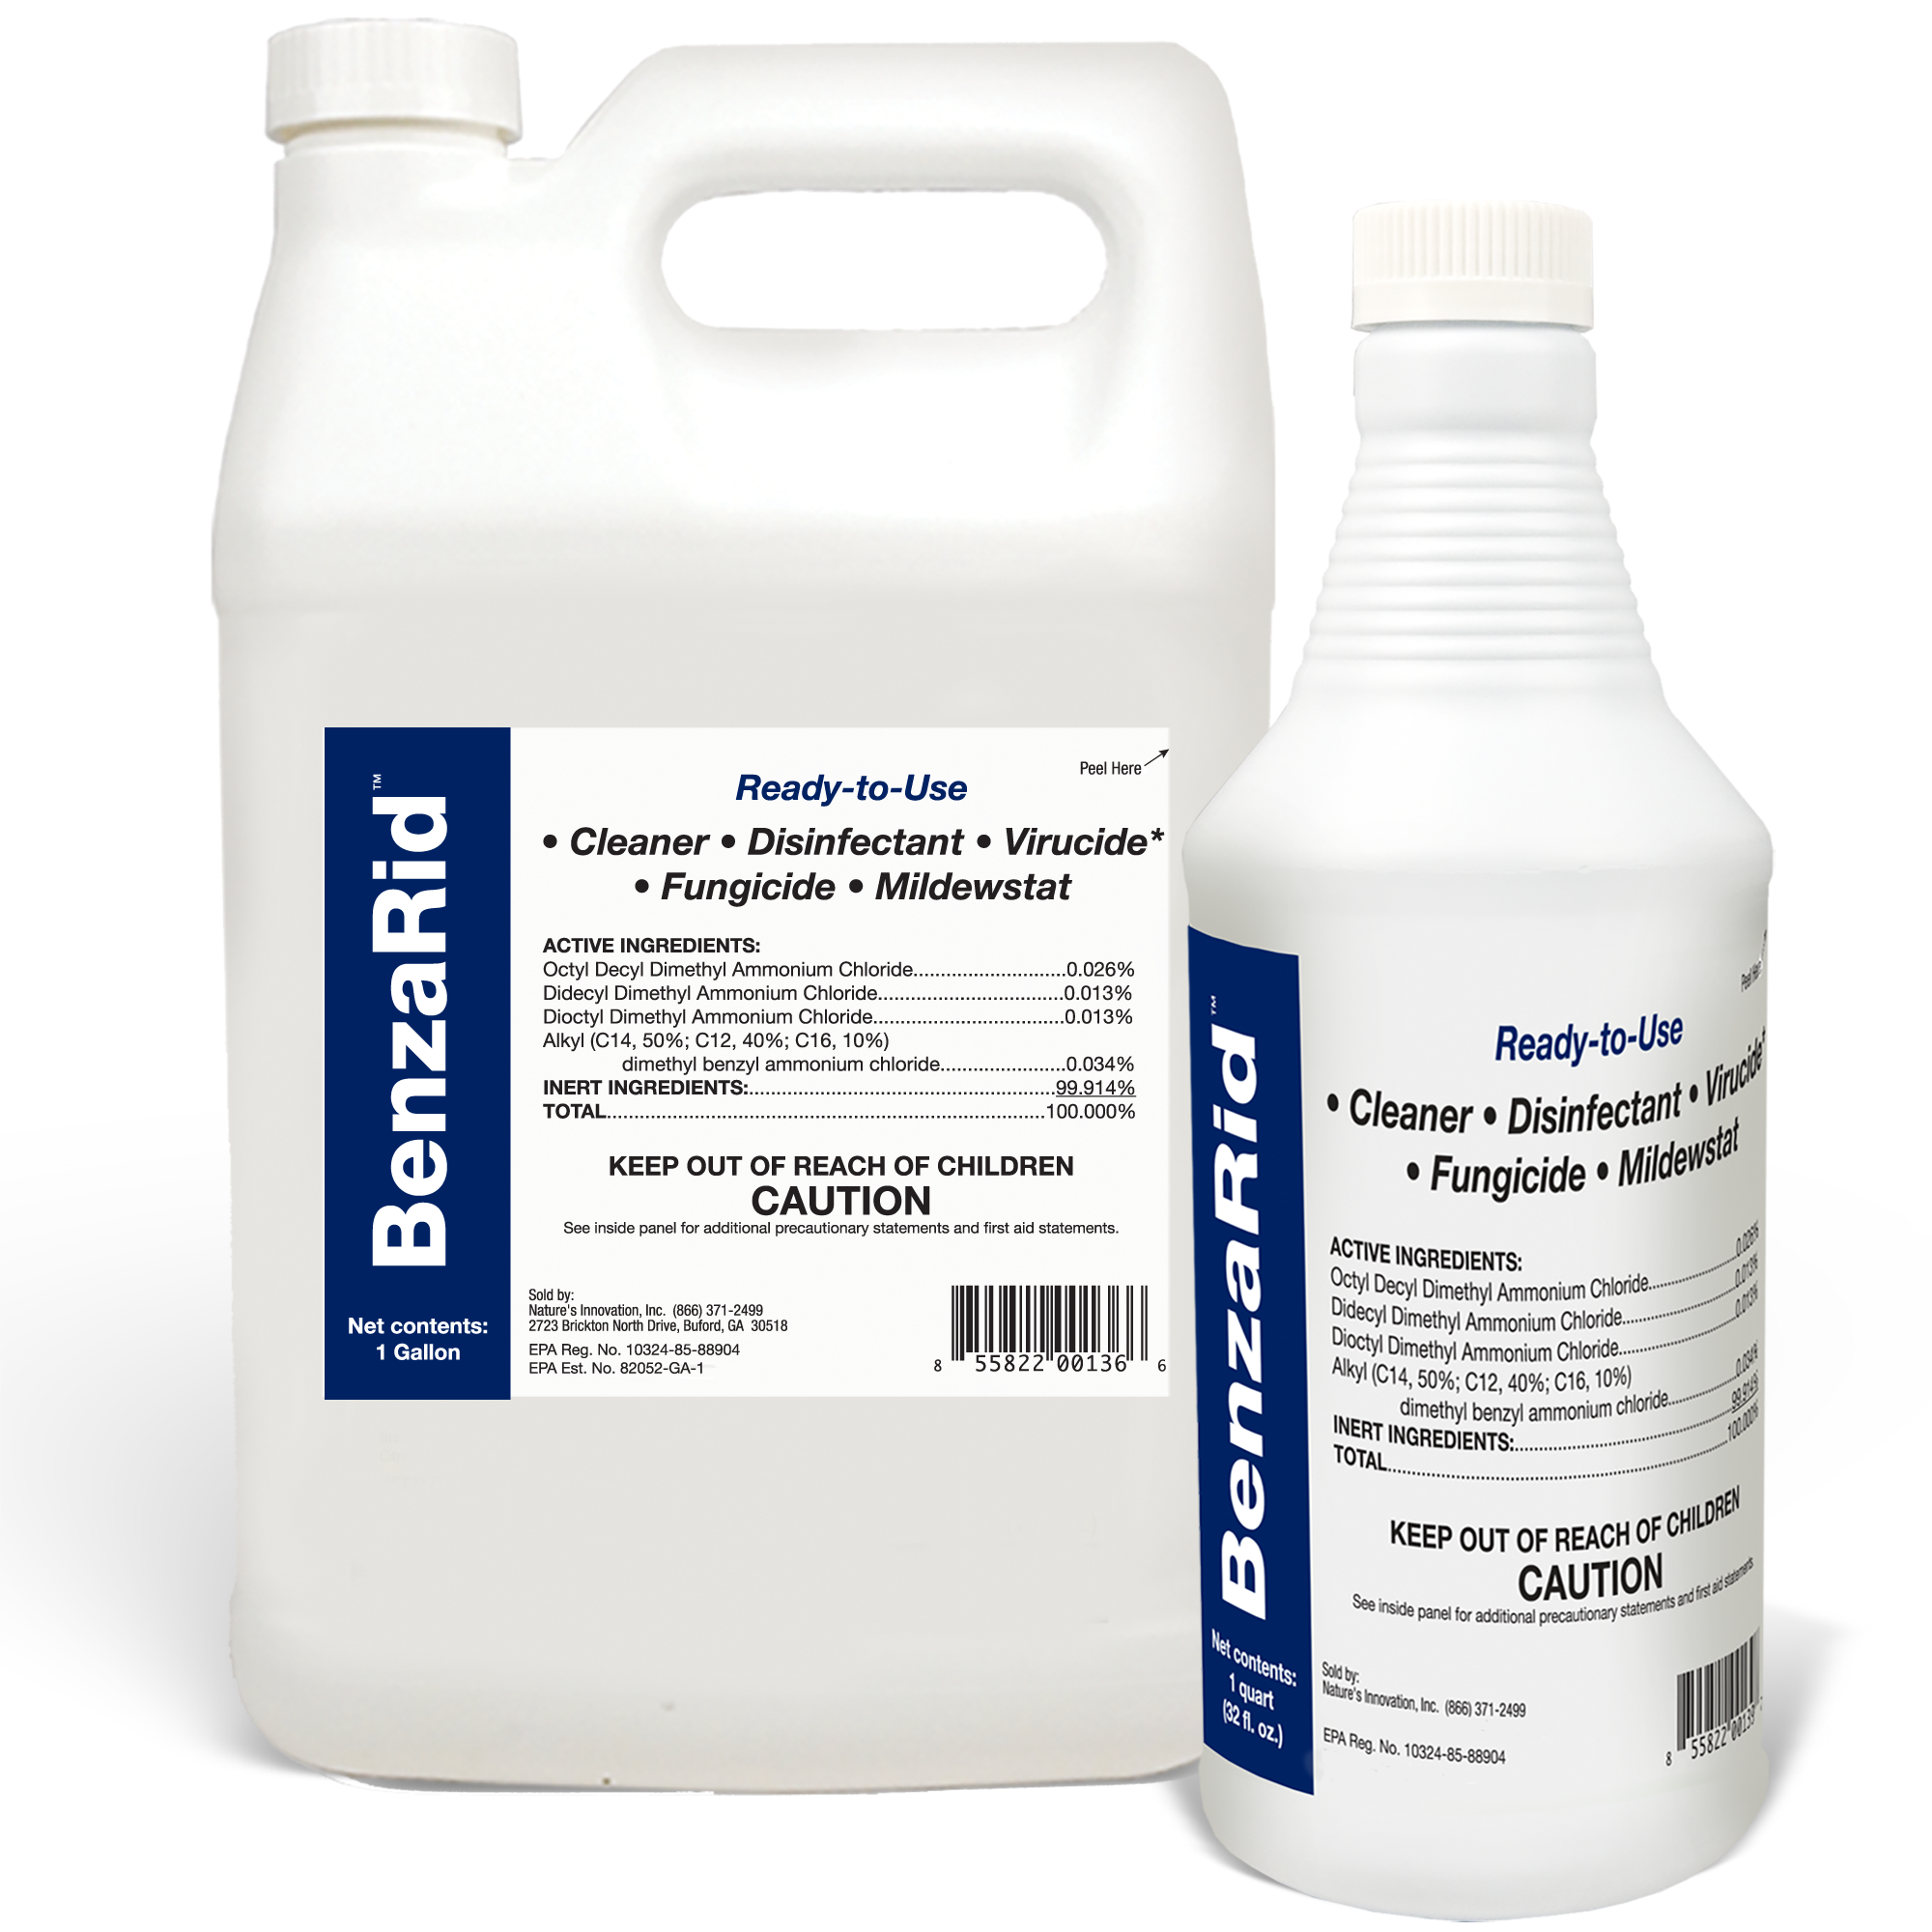 BenzaRid Hospital Grade Cleaner - Disinfectant, Virucide, Fungicide - 5 Gallon